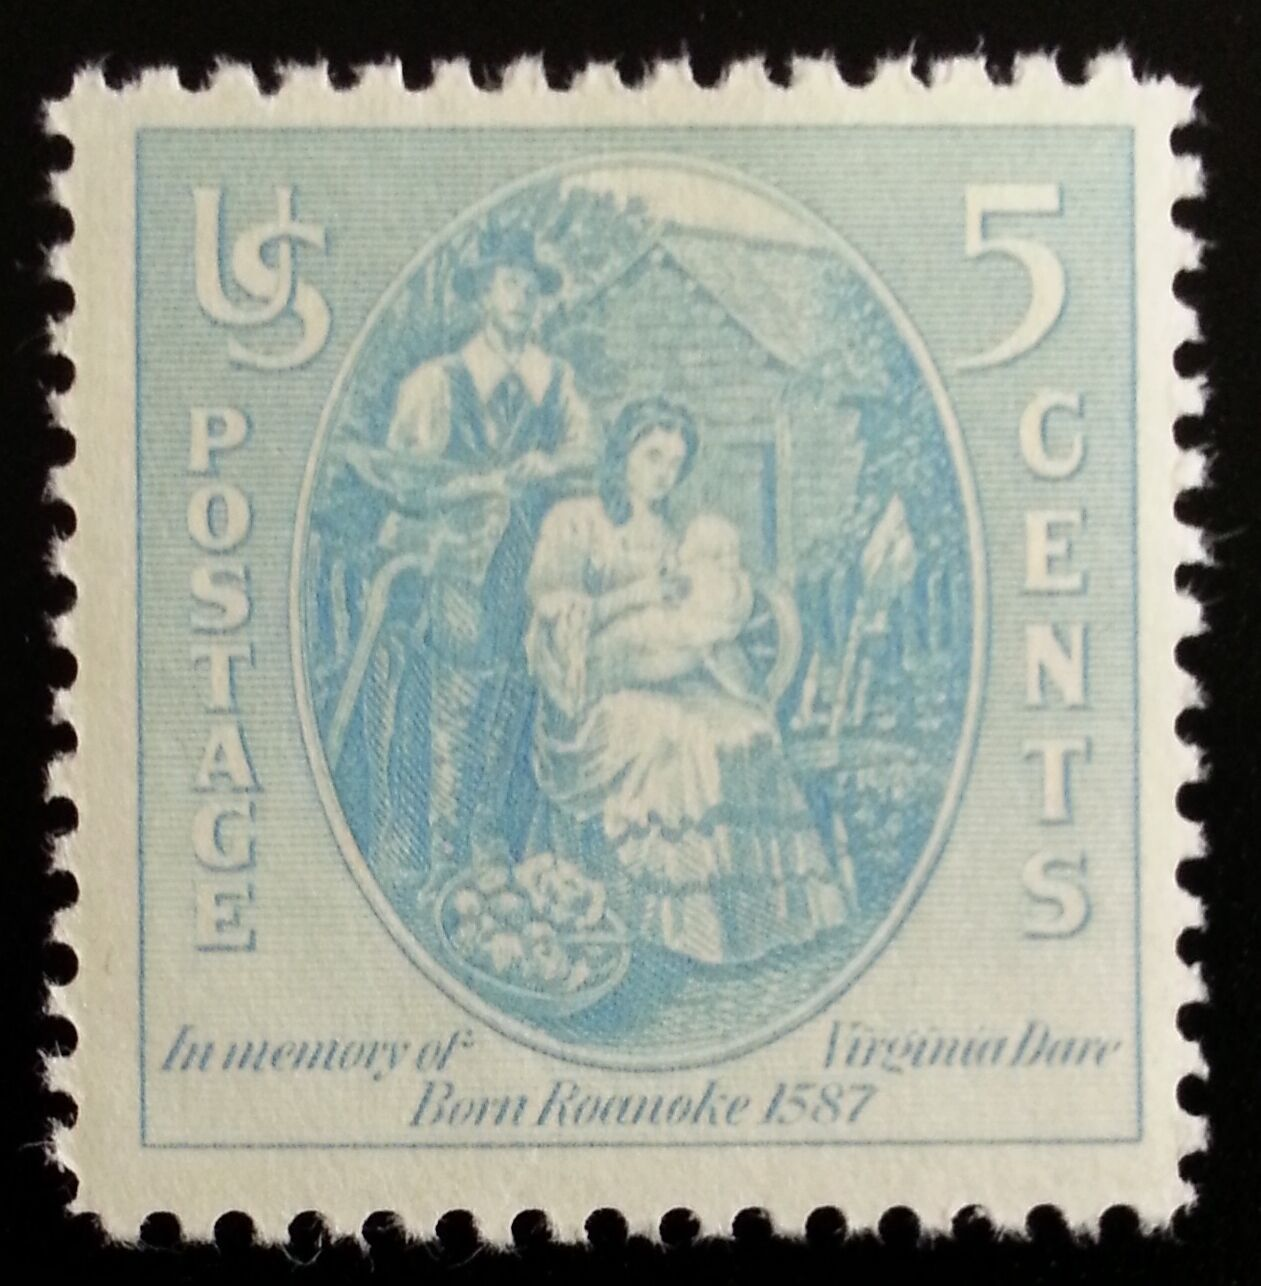 1937 5c Virginia Dare, First Child to English Parents S